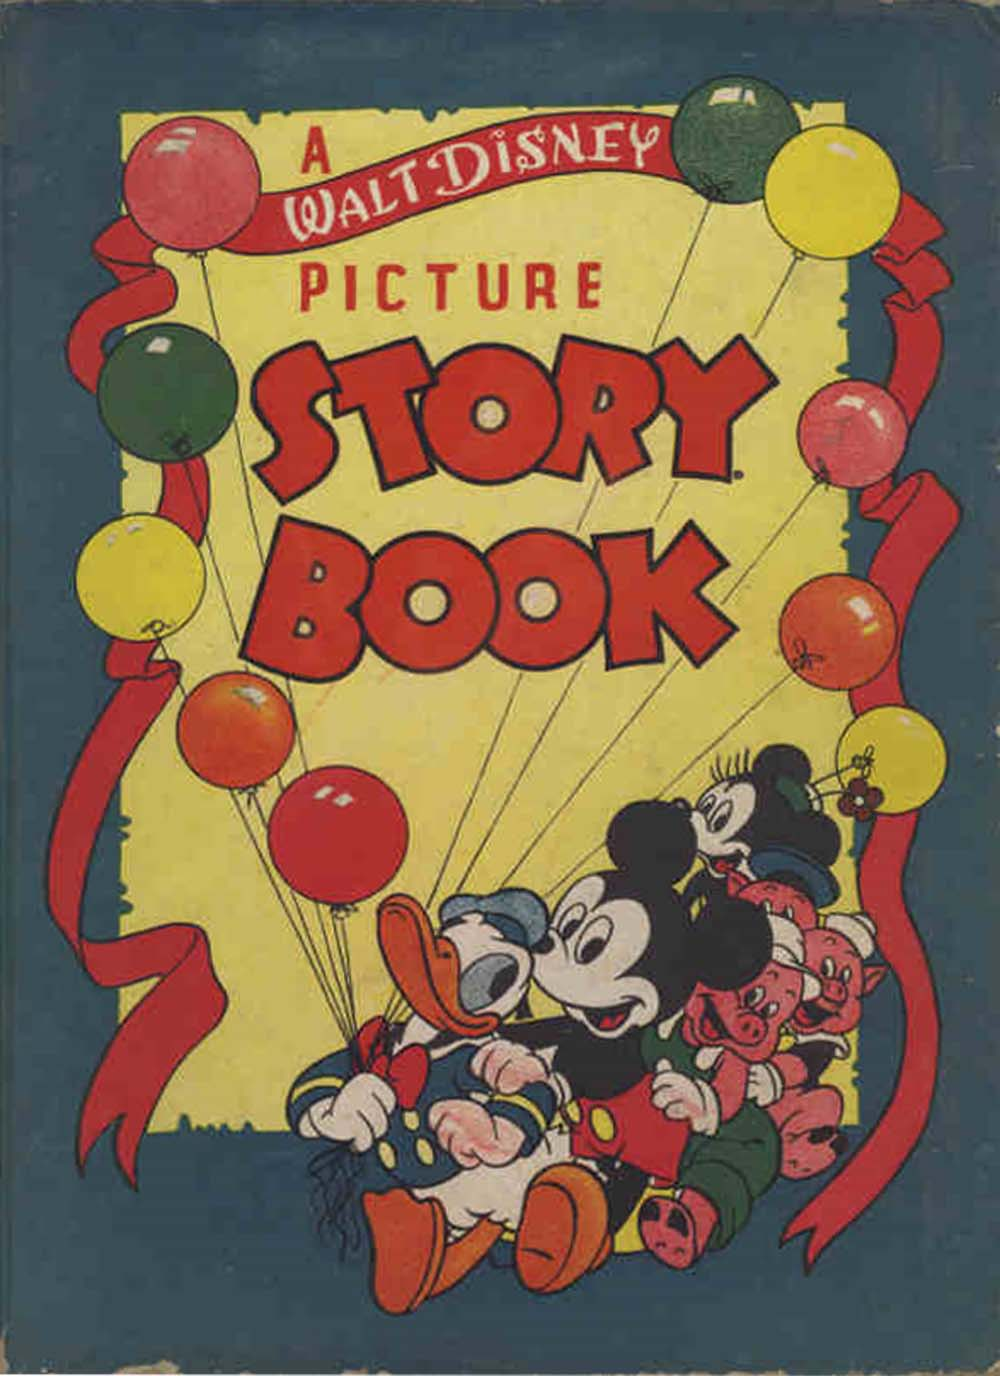 A Walt Disney Picture Story Book